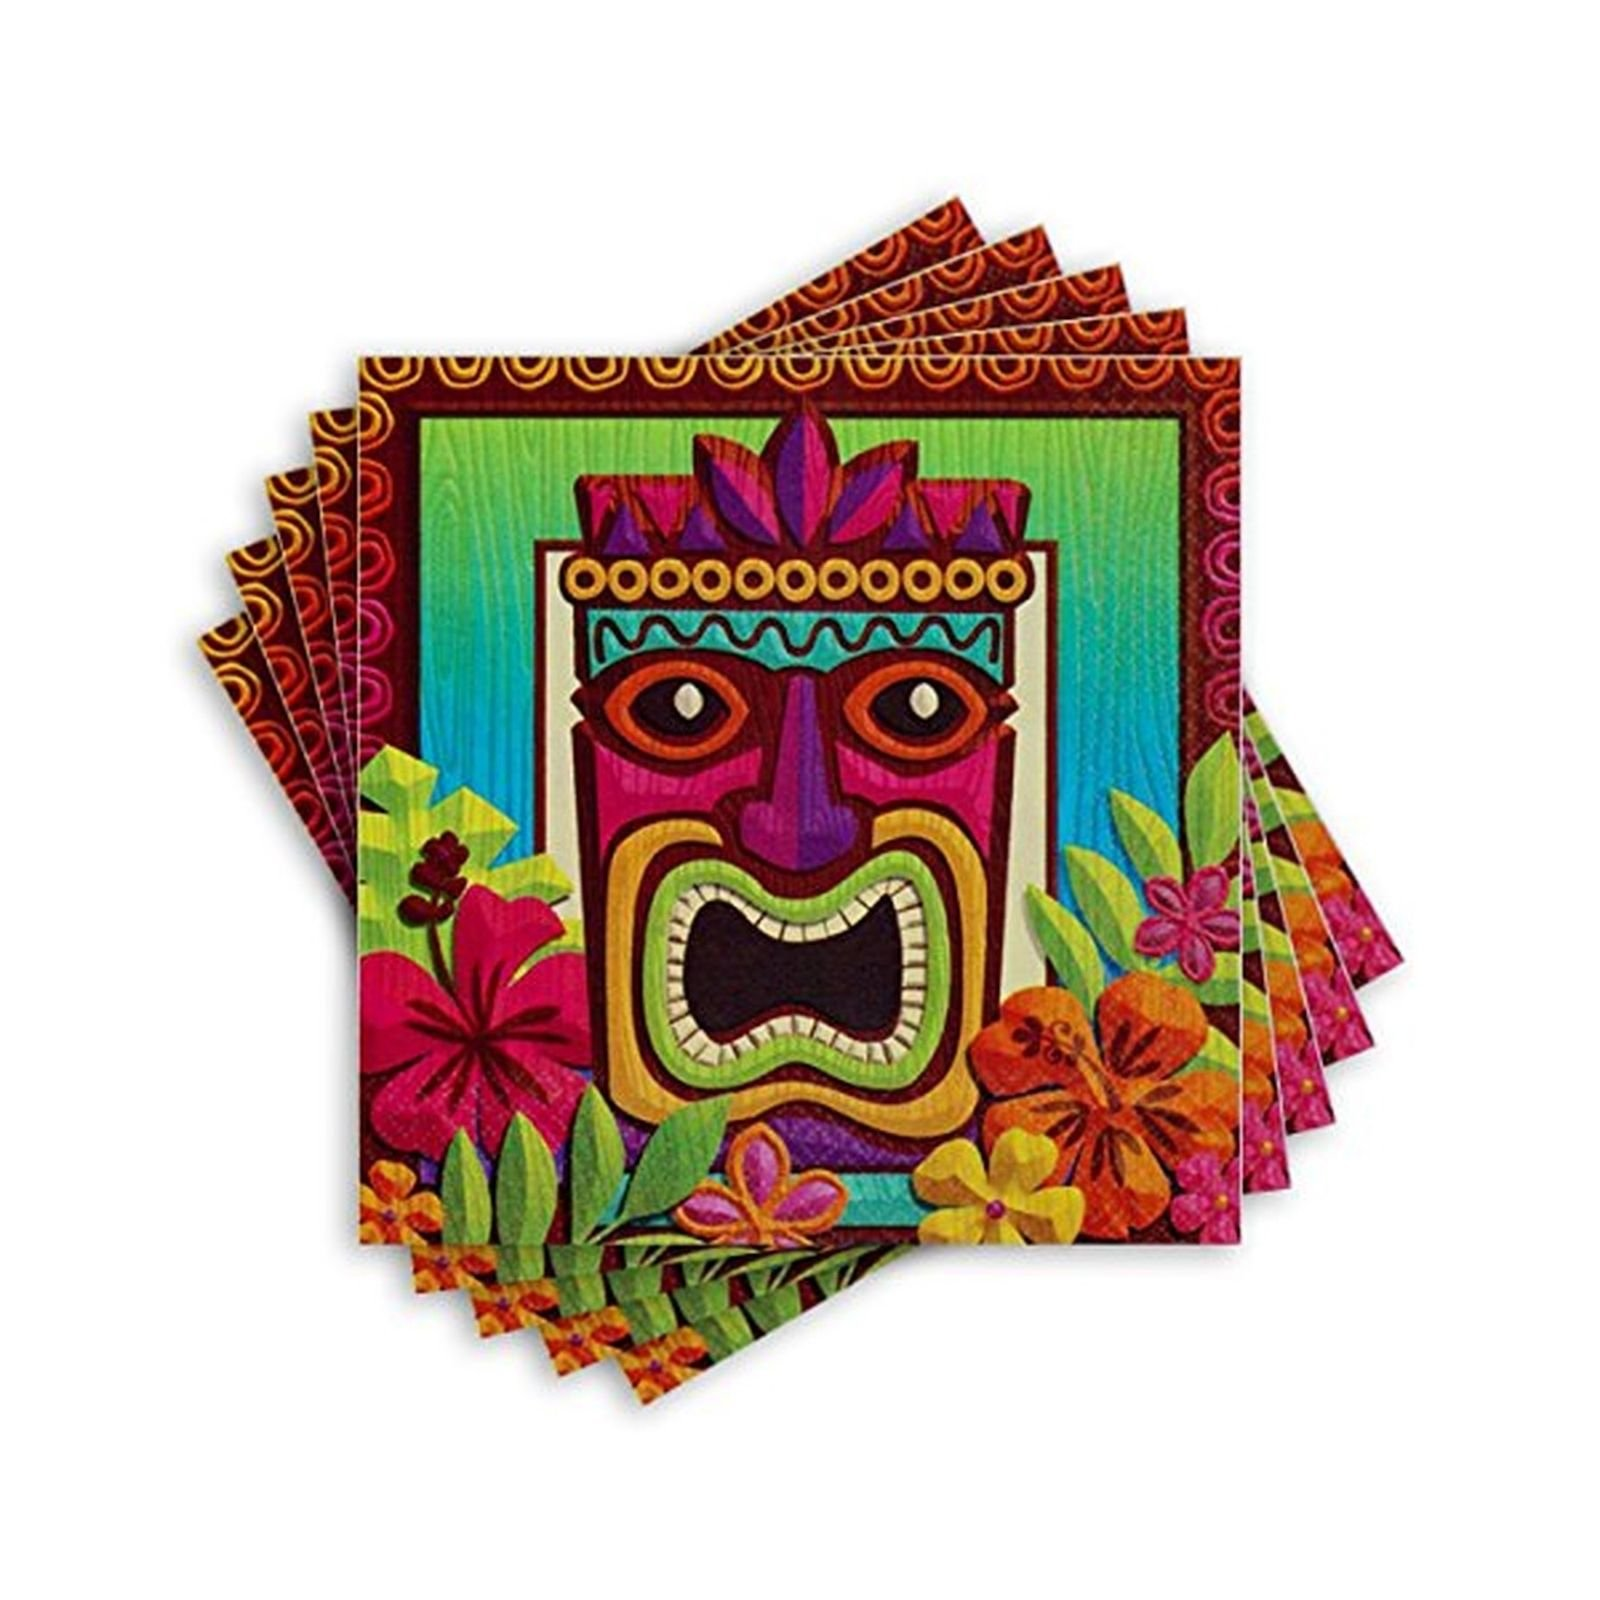 Amscan Sun-Sational Summer Luau Tropical Tiki Luncheon Napkins Paper 65'' x 65'' Pack 125 Party Supplies , 750 Pieces by Amscan